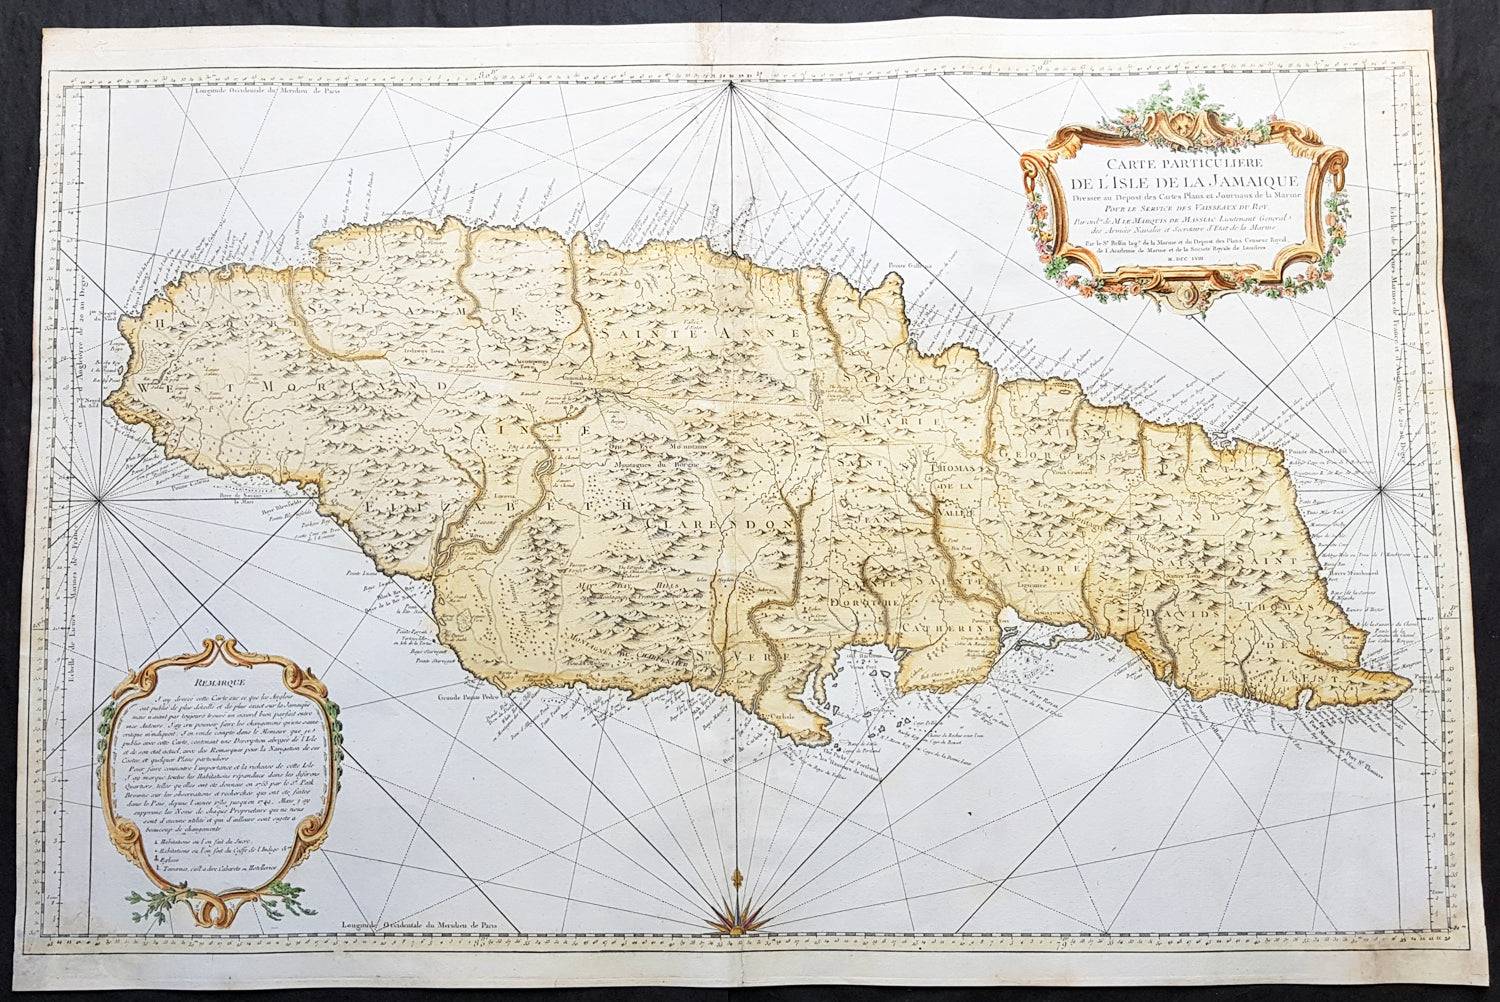 1758 J N Bellin Large Antique Map of The Caribbean Island of Jamaica Carribean Island Map on